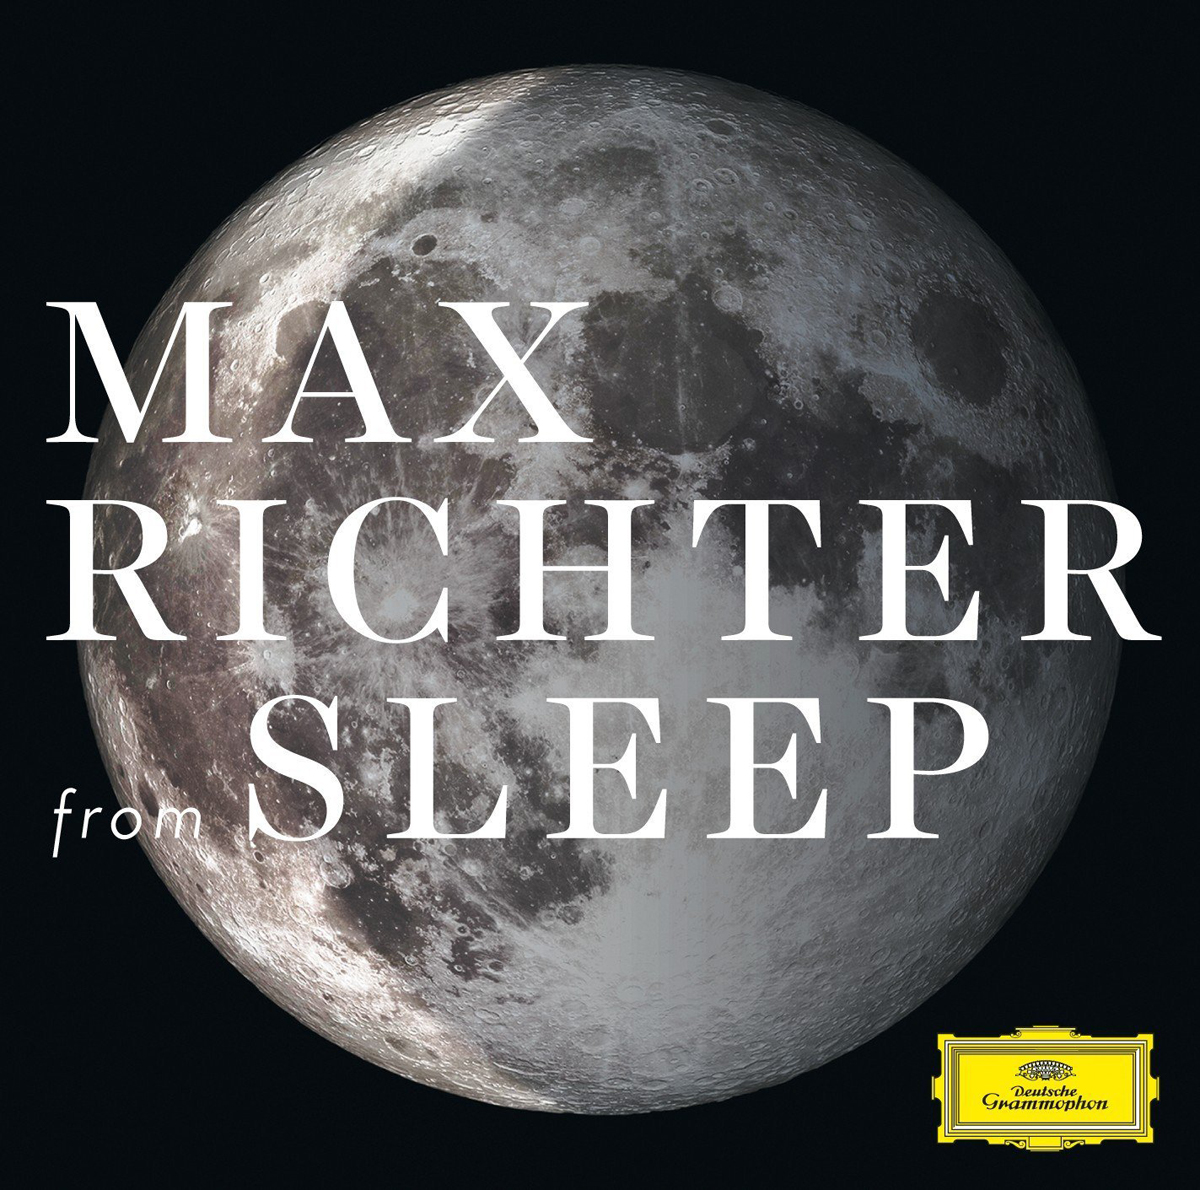 Макс Рихтер,American Contemporary Music Ensemble Max Richter. From Sleep max richter max richter sleep remixed